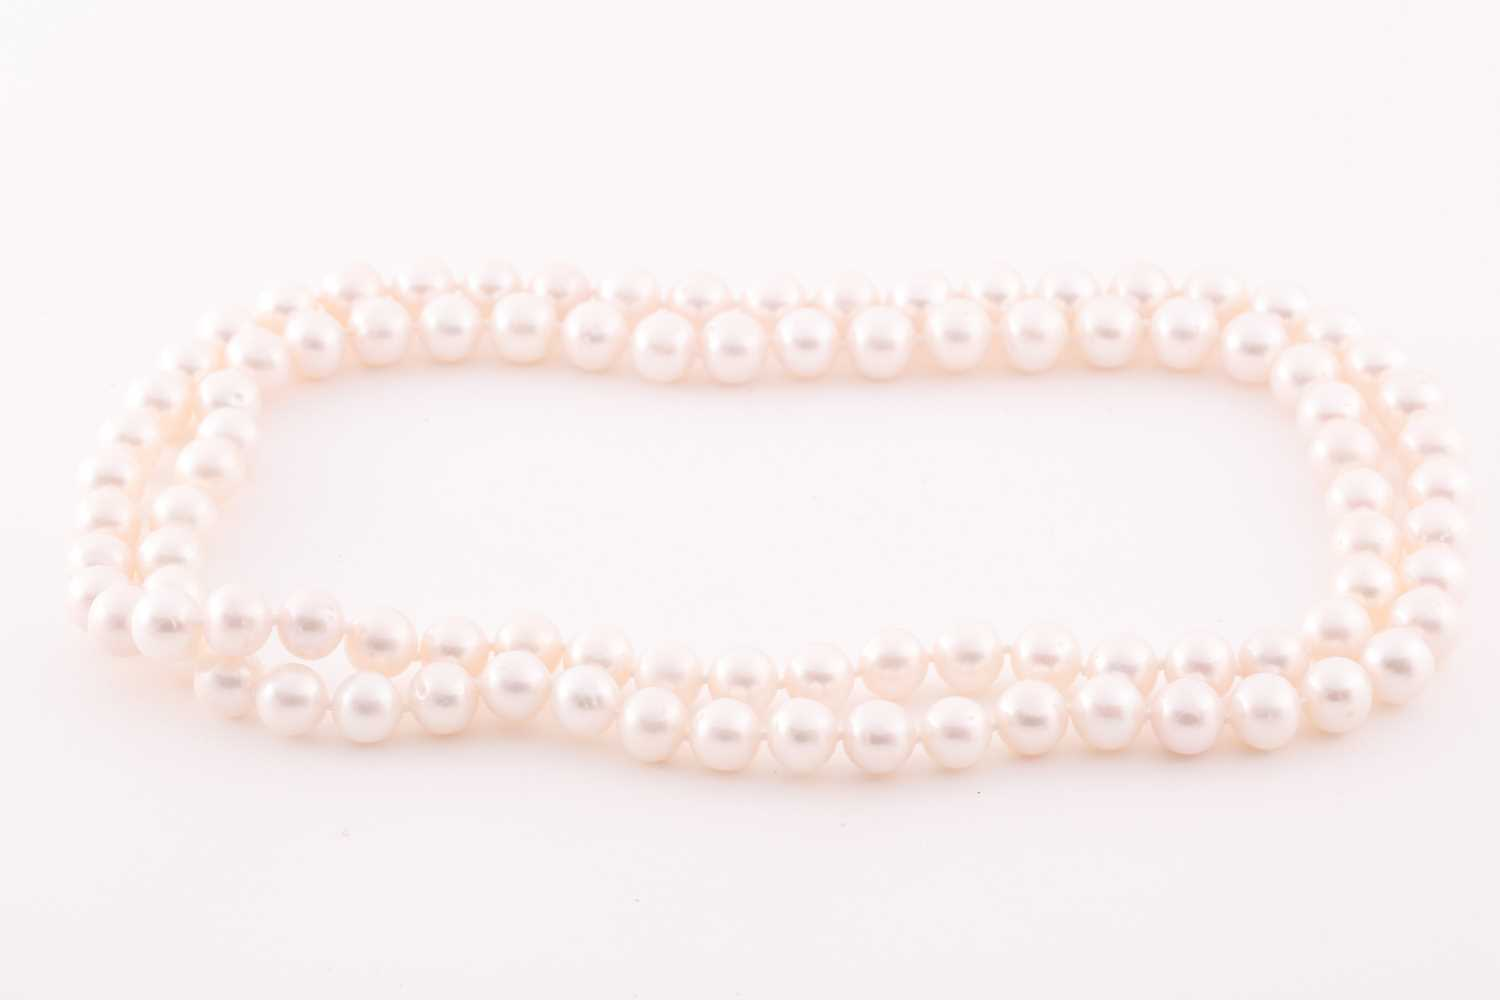 A cultured pearl necklace, comprised of freshwater pearls of approximately 8-9 mm diameter, the